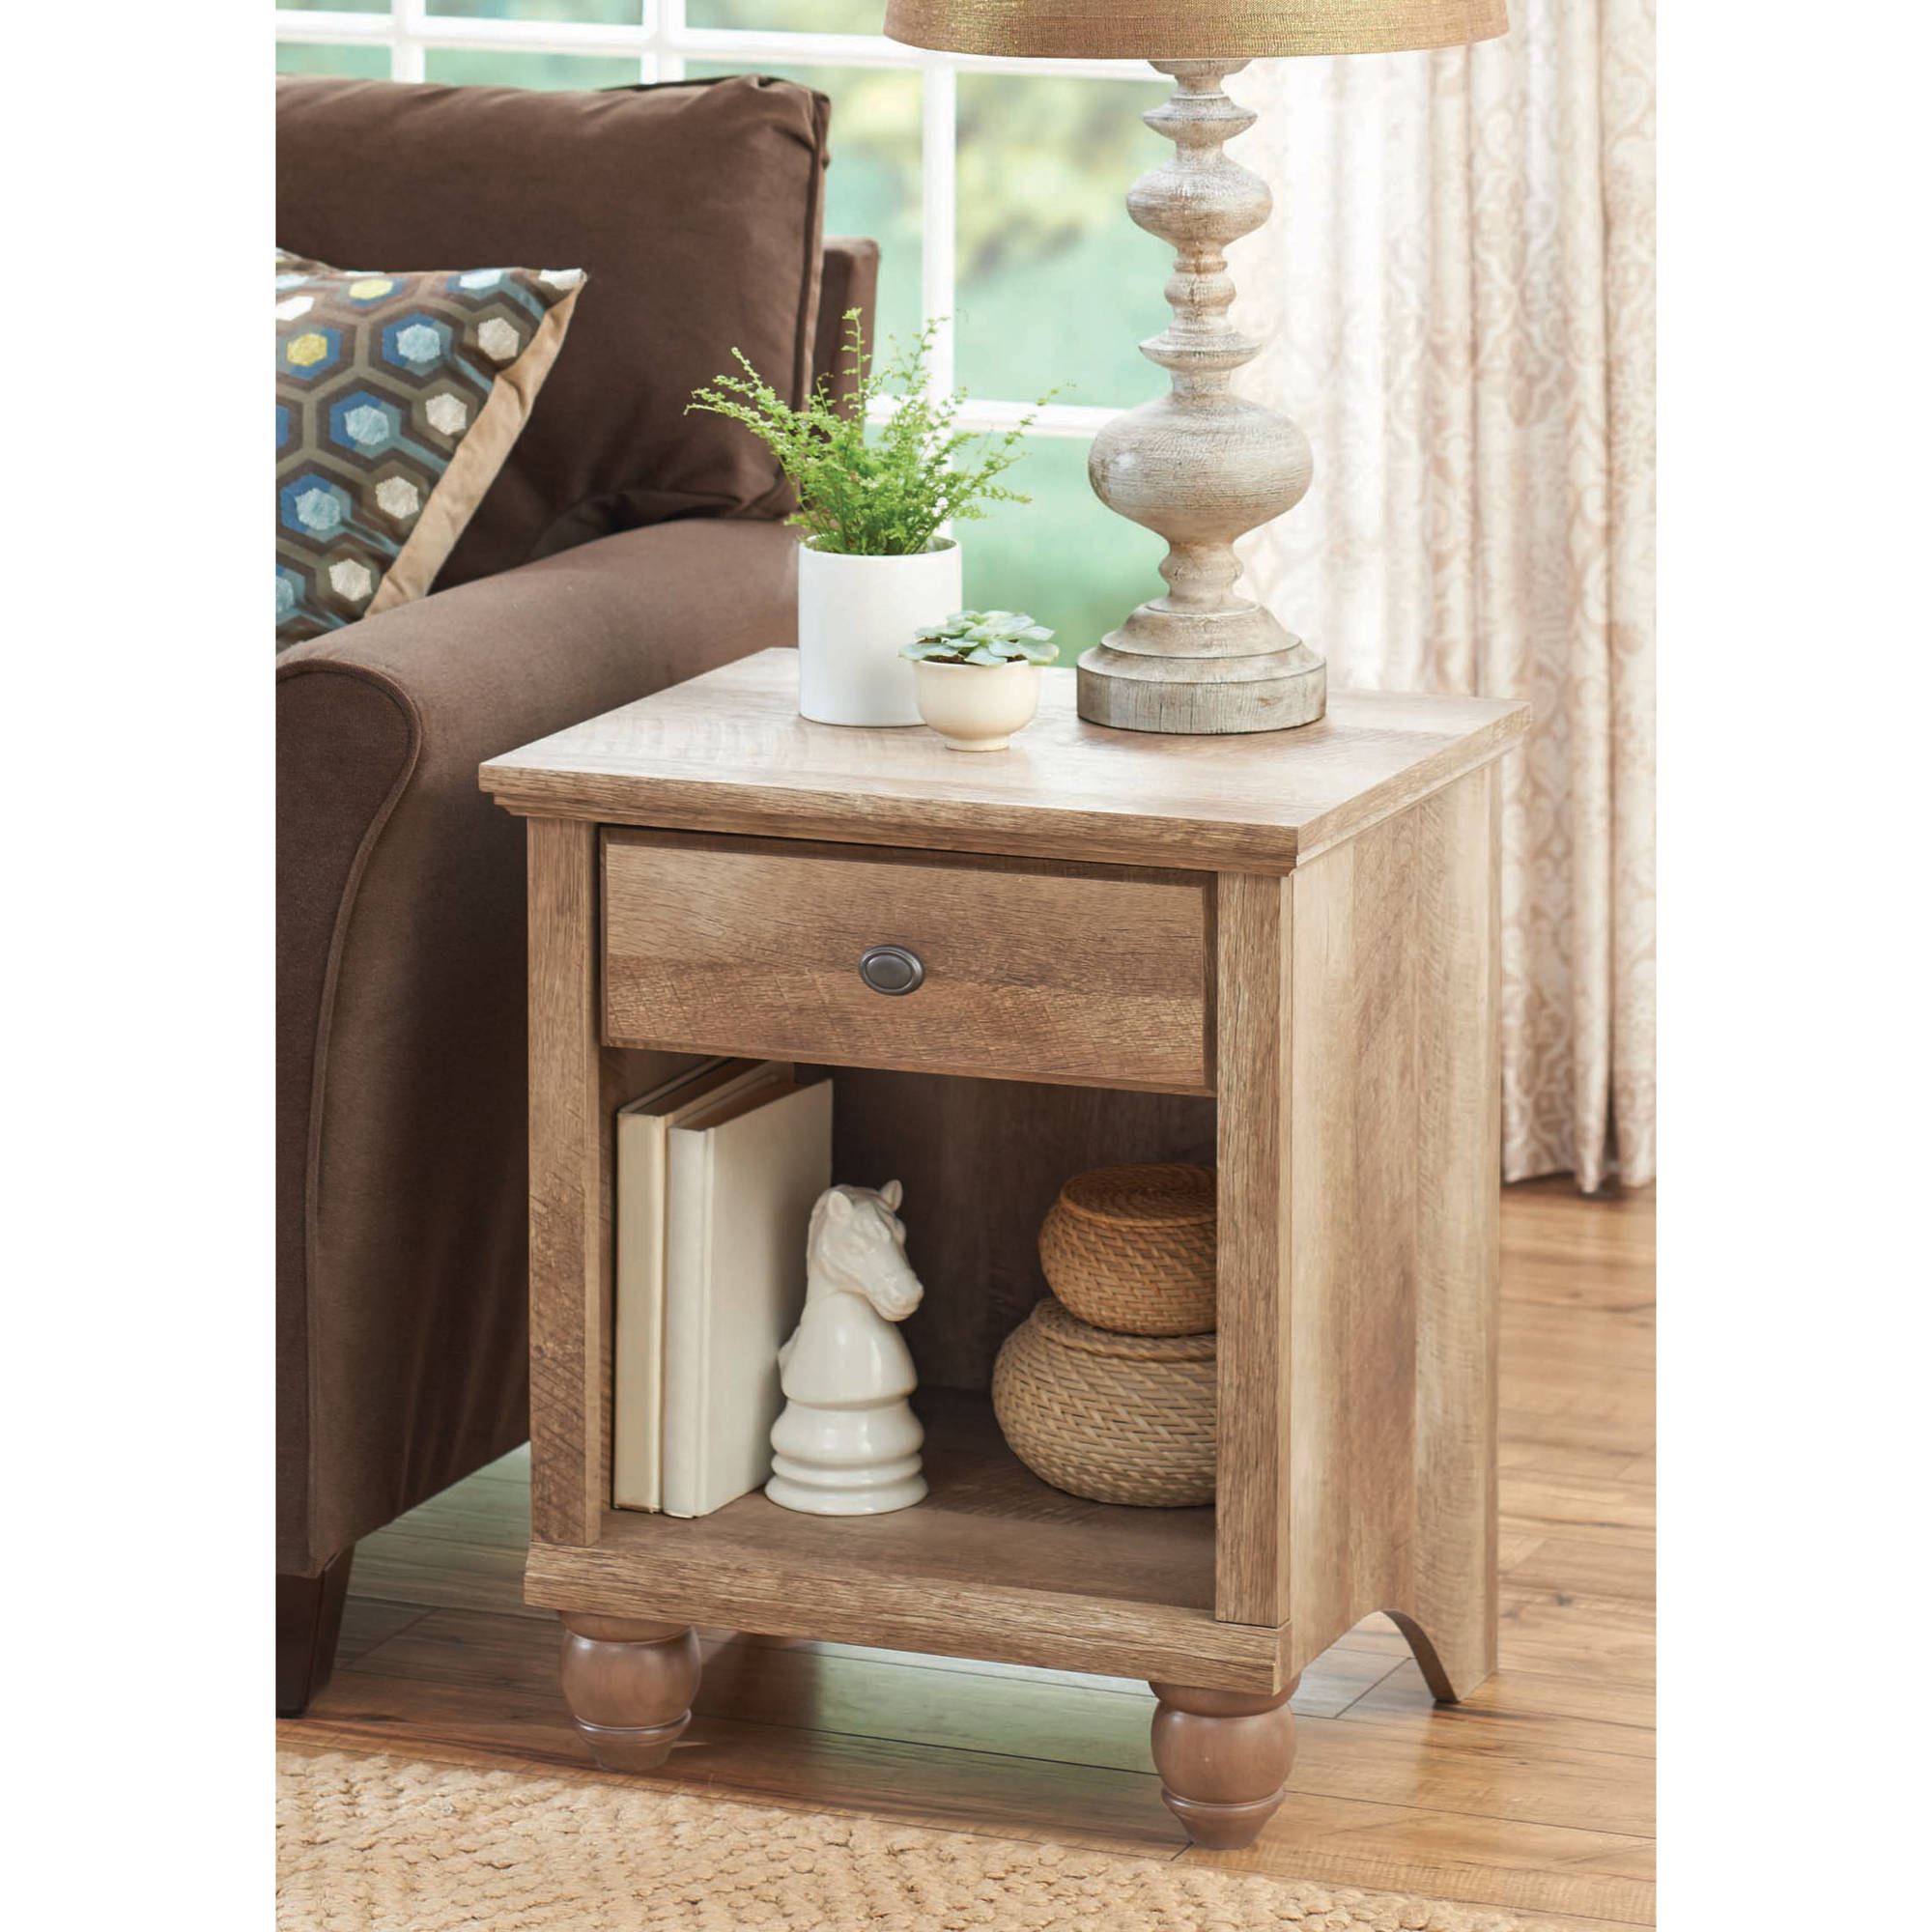 better homes gardens crossmill accent table weathered finish room essentials assembly instructions tall pedestal stand pottery barn childrens interior home decoration thin